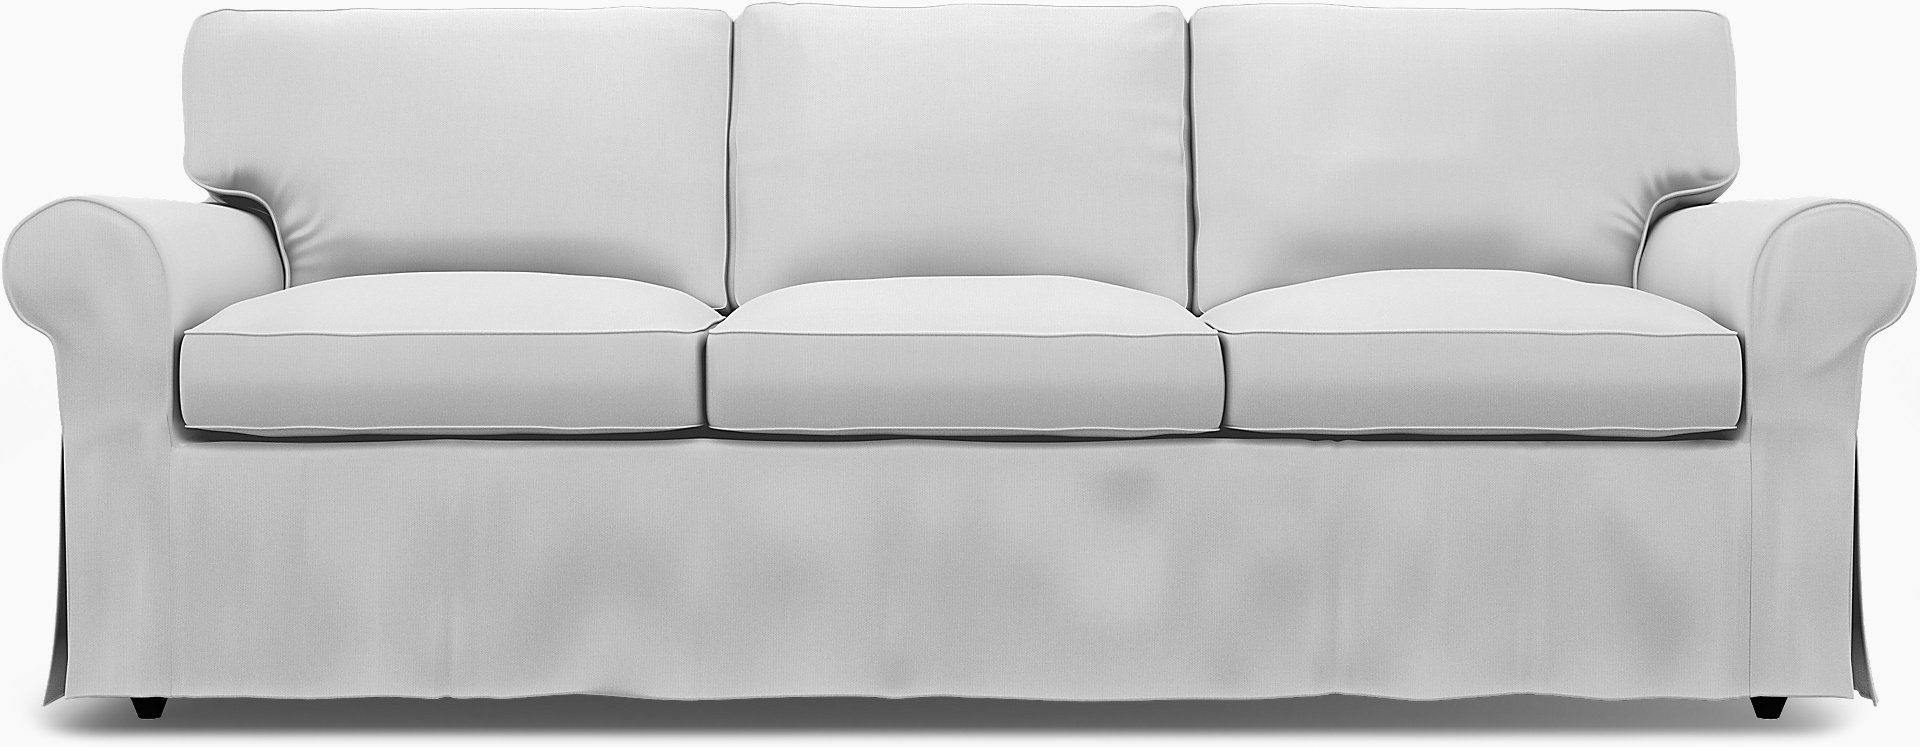 Ikea Ektorp 3 Seater Sofa Cover With Piping Bemz Bemz In 2020